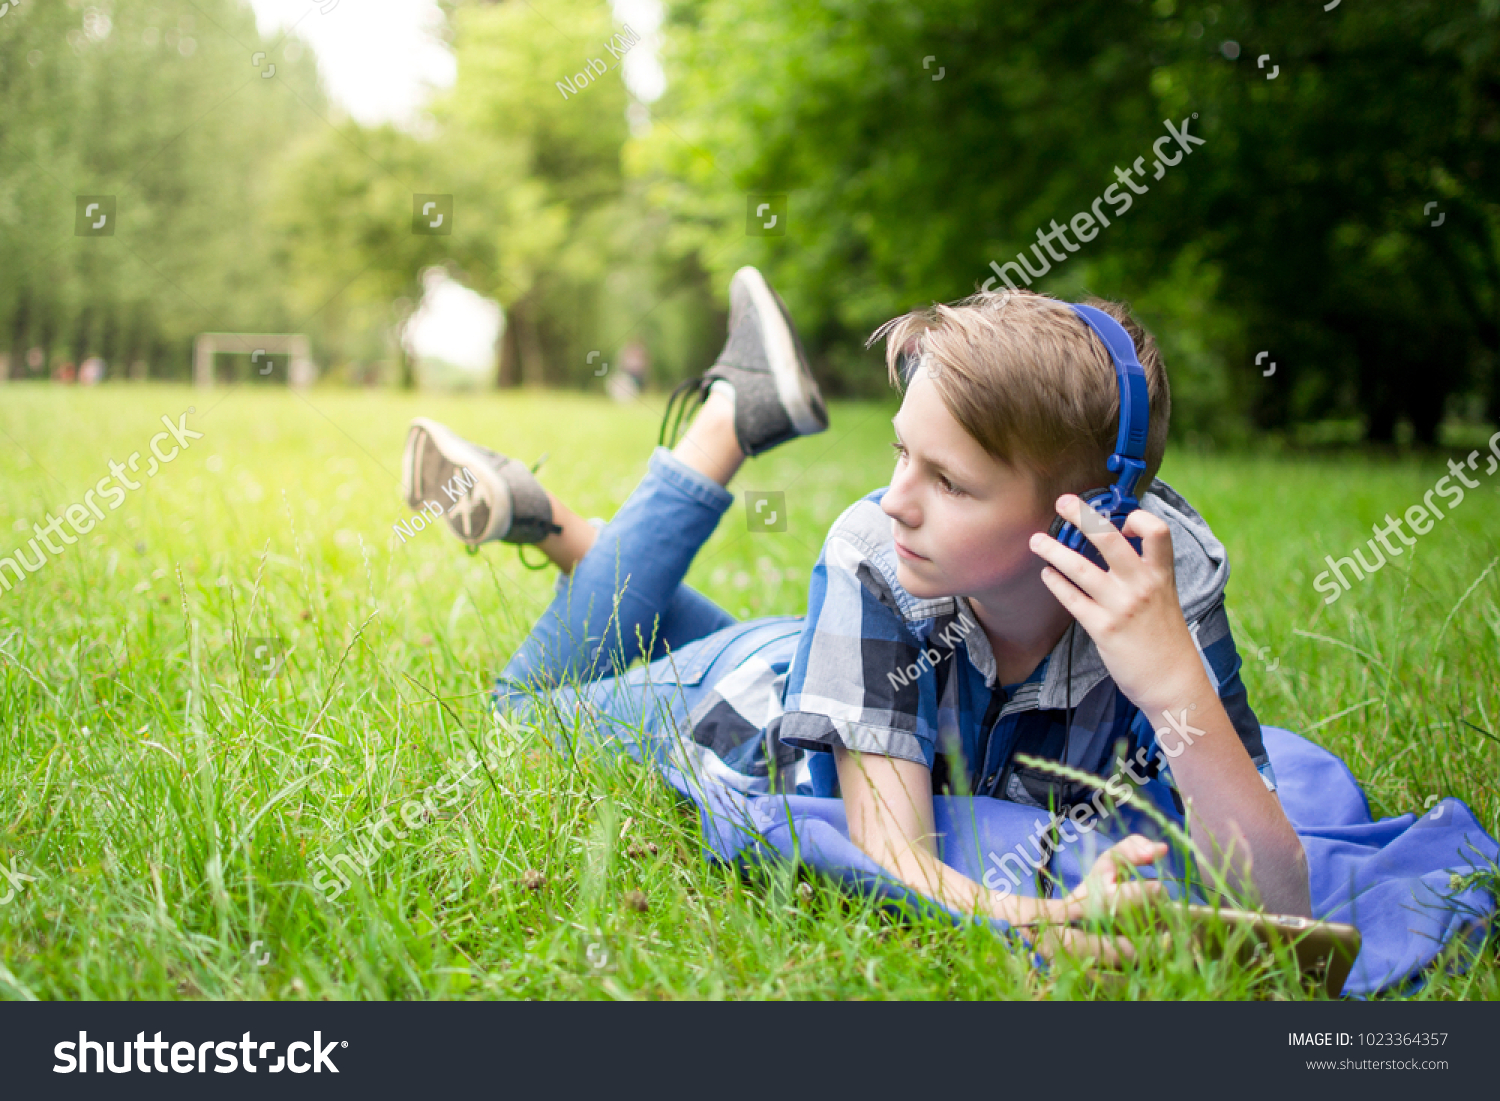 Cute little boy in blue shirt wearing headphones lying on the grass alone in summer park